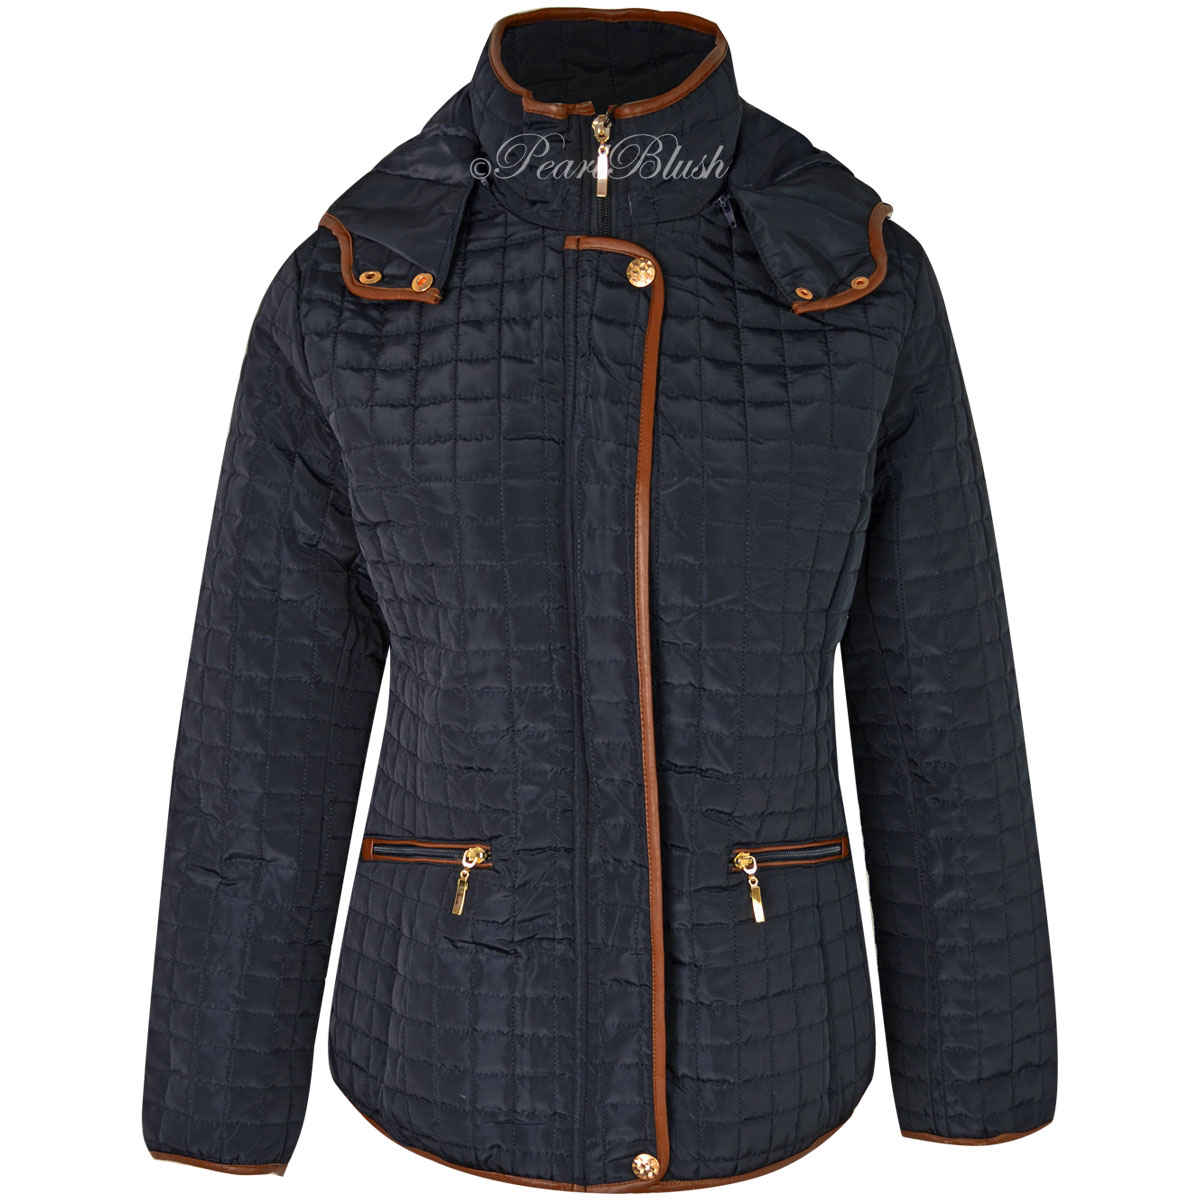 WOMENS LADIES QUILTED WINTER COAT PUFFER FITTED JACKET